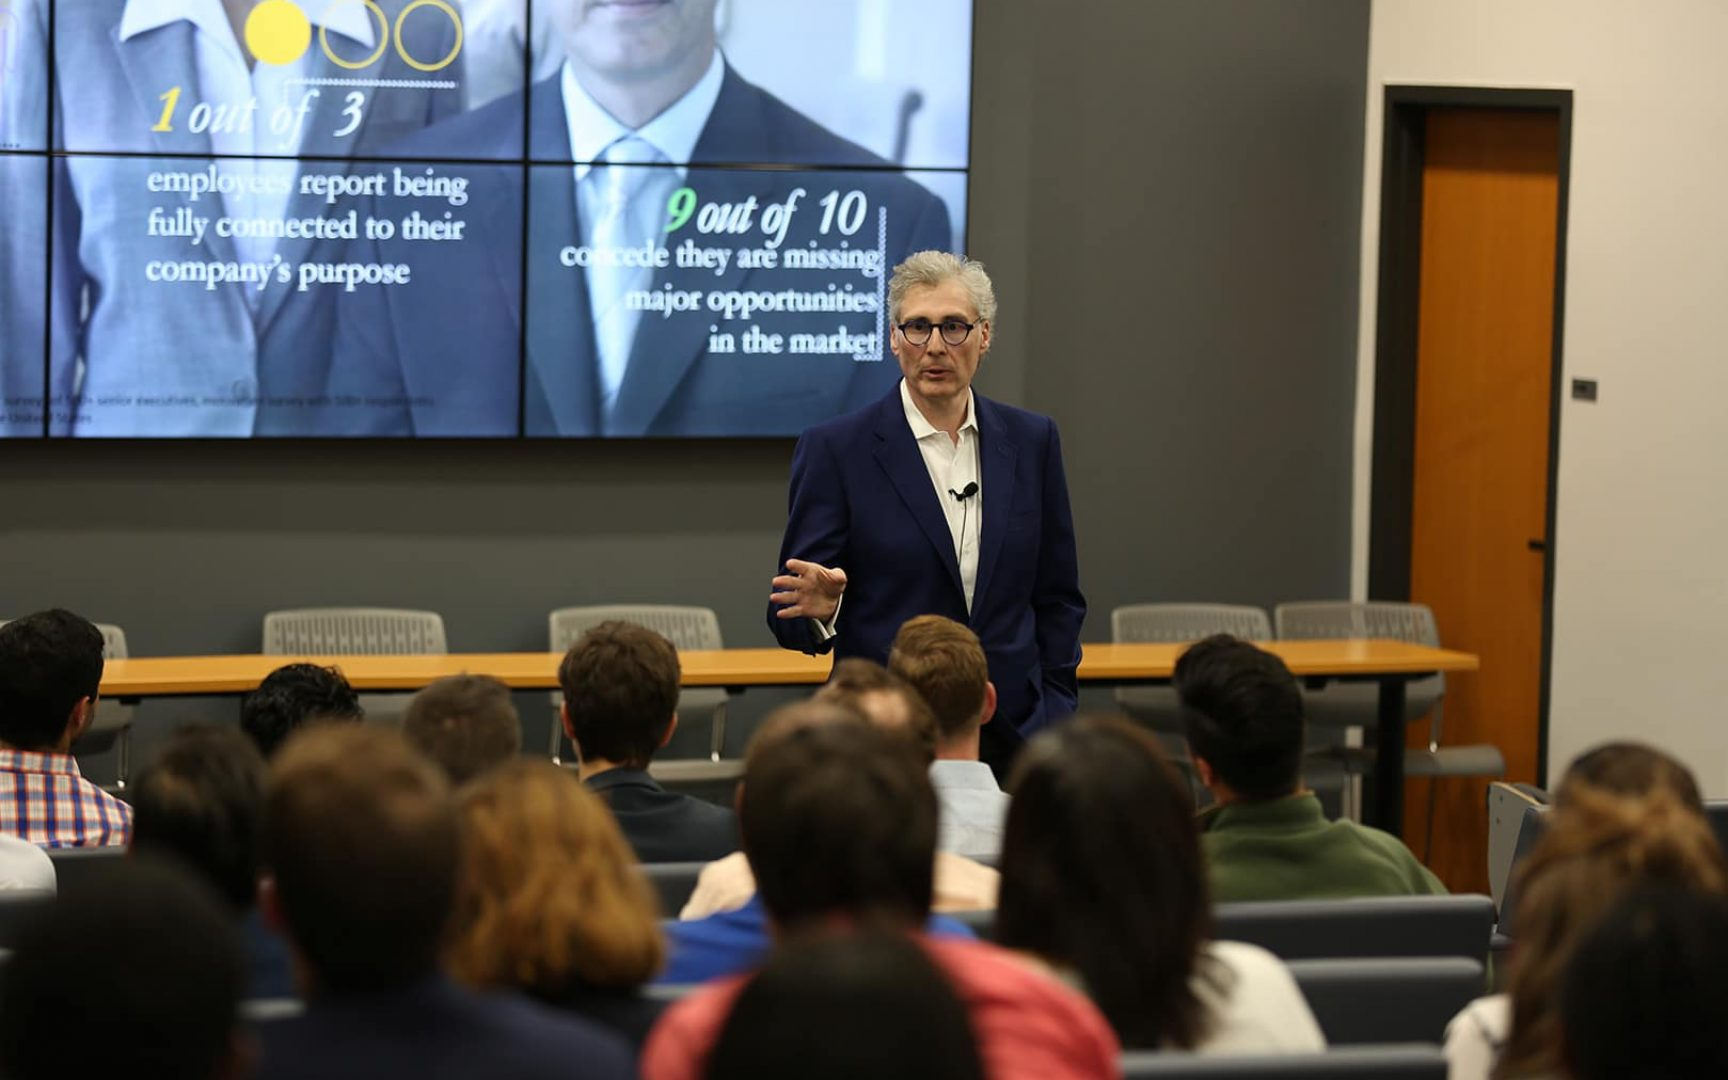 Cesare Mainardi speaks to a group of students in an auditorium